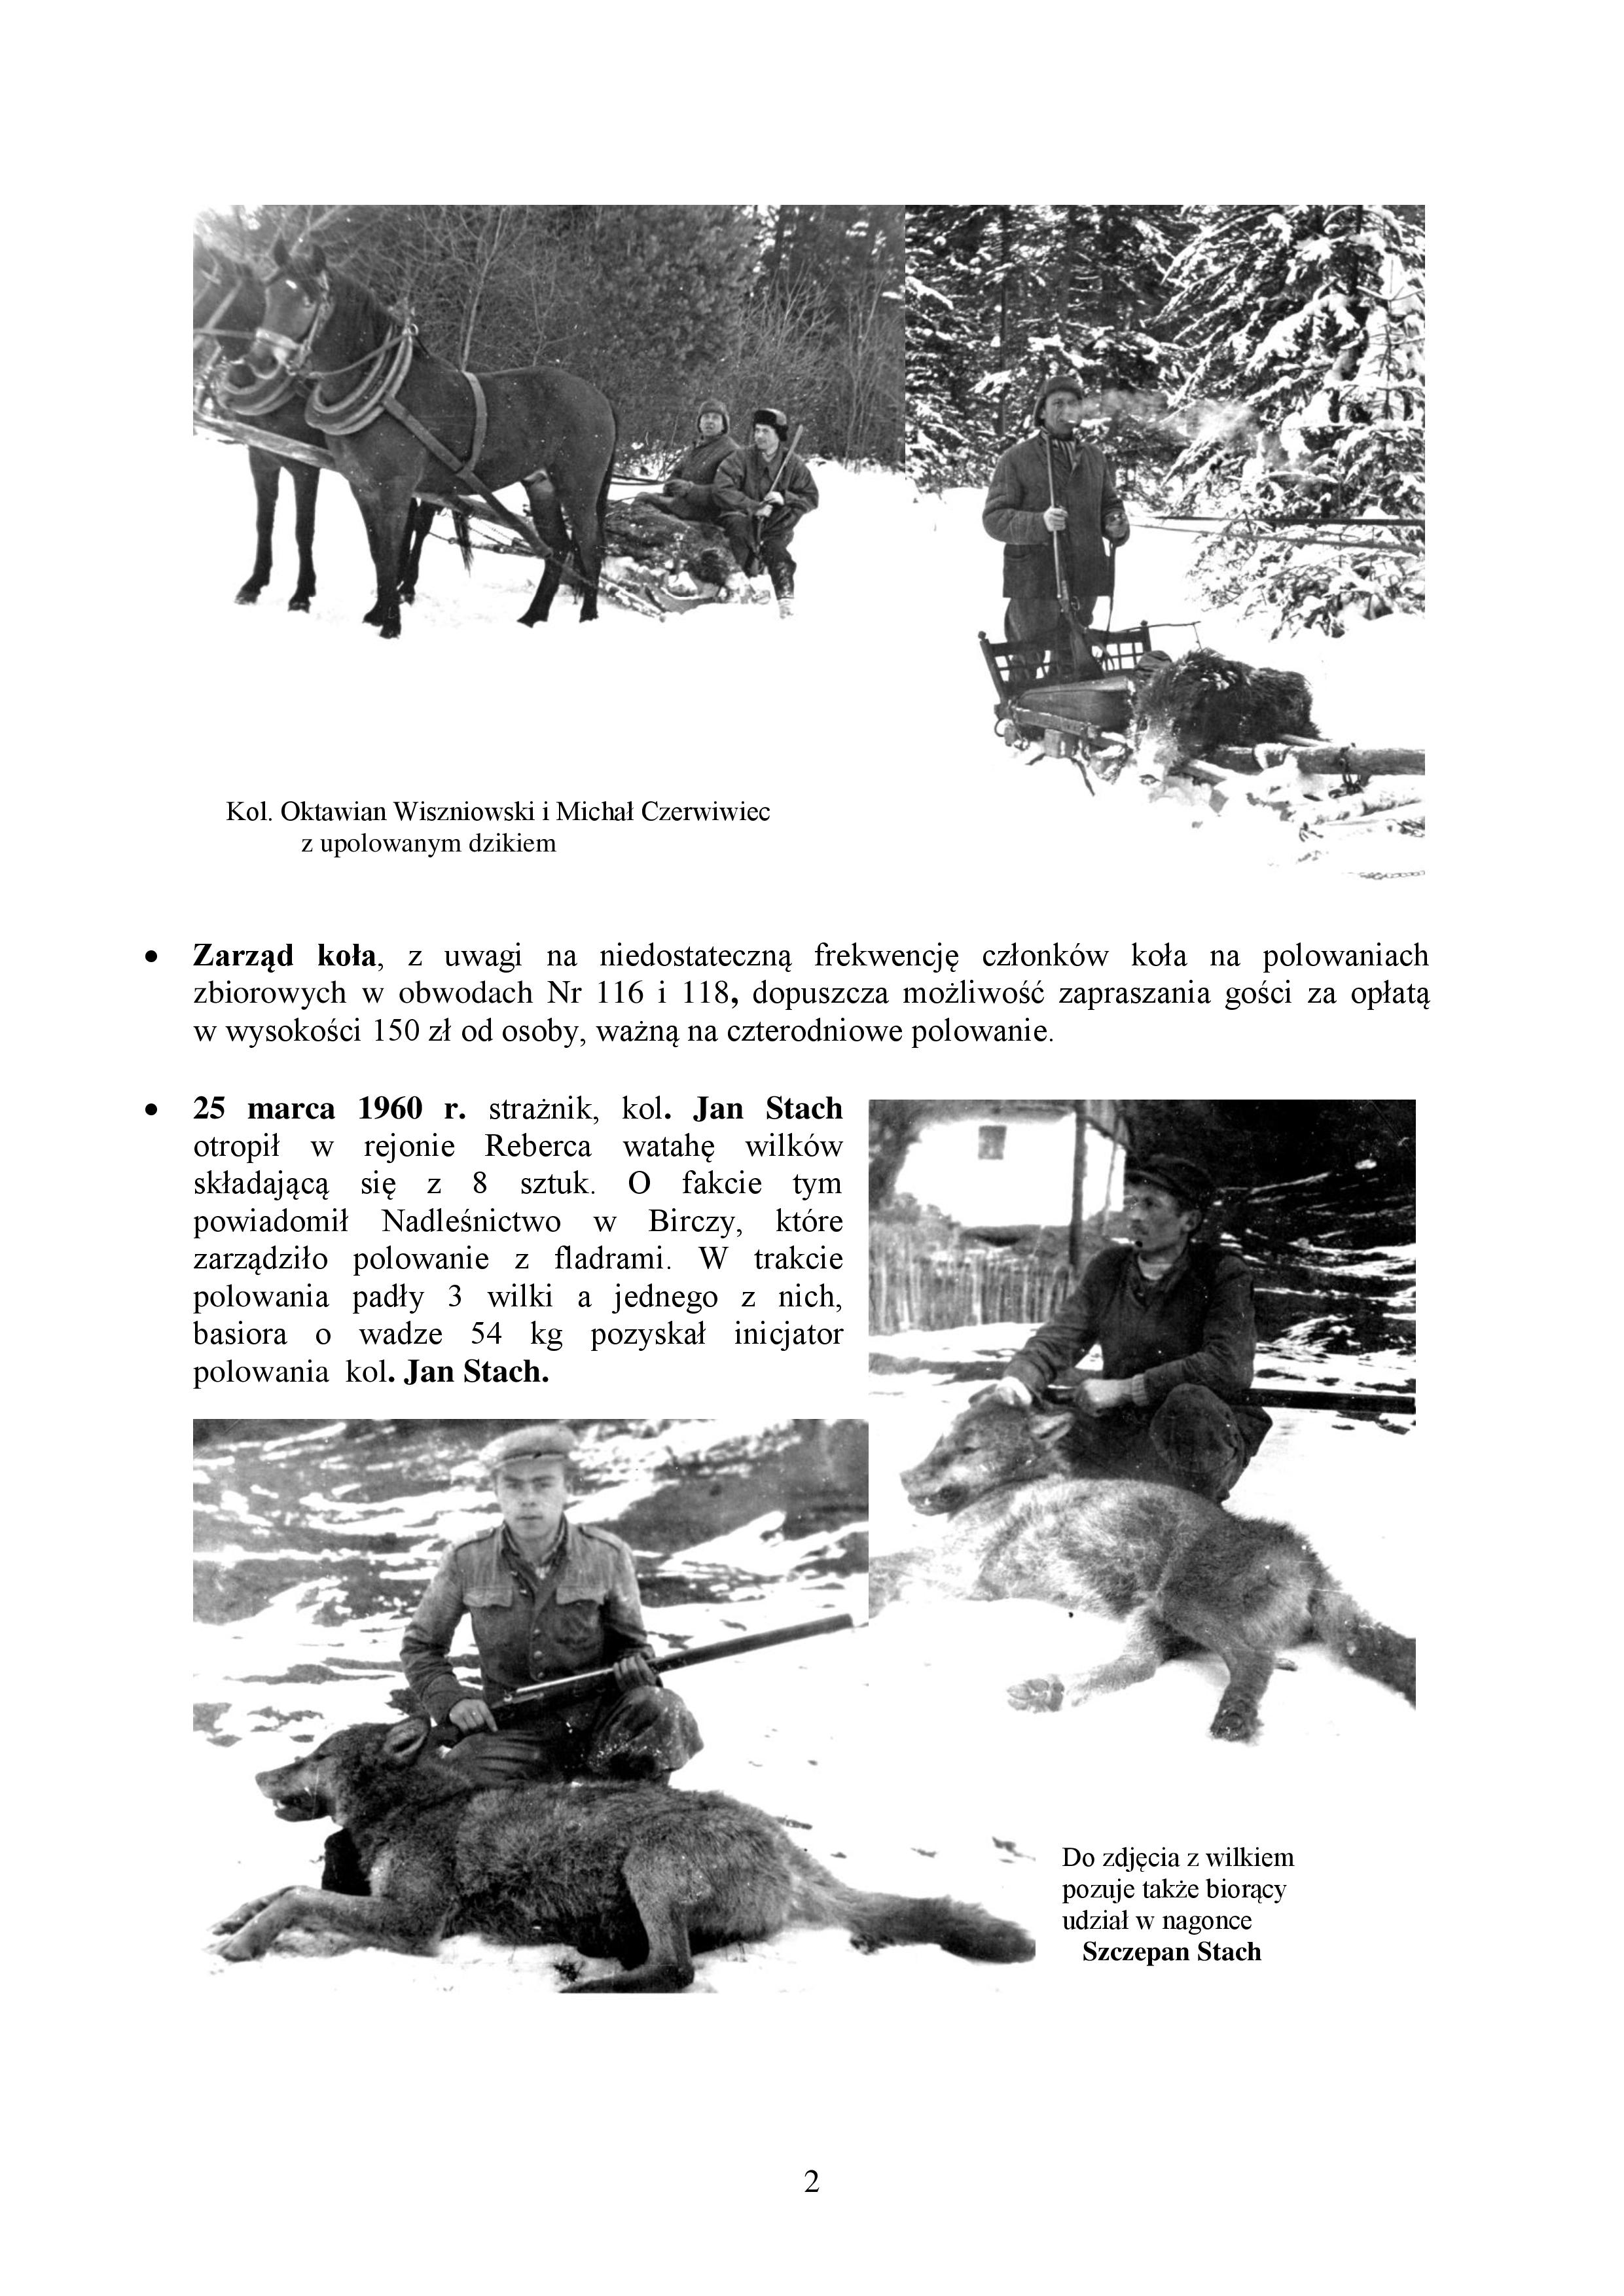 ROK 1959-page-002